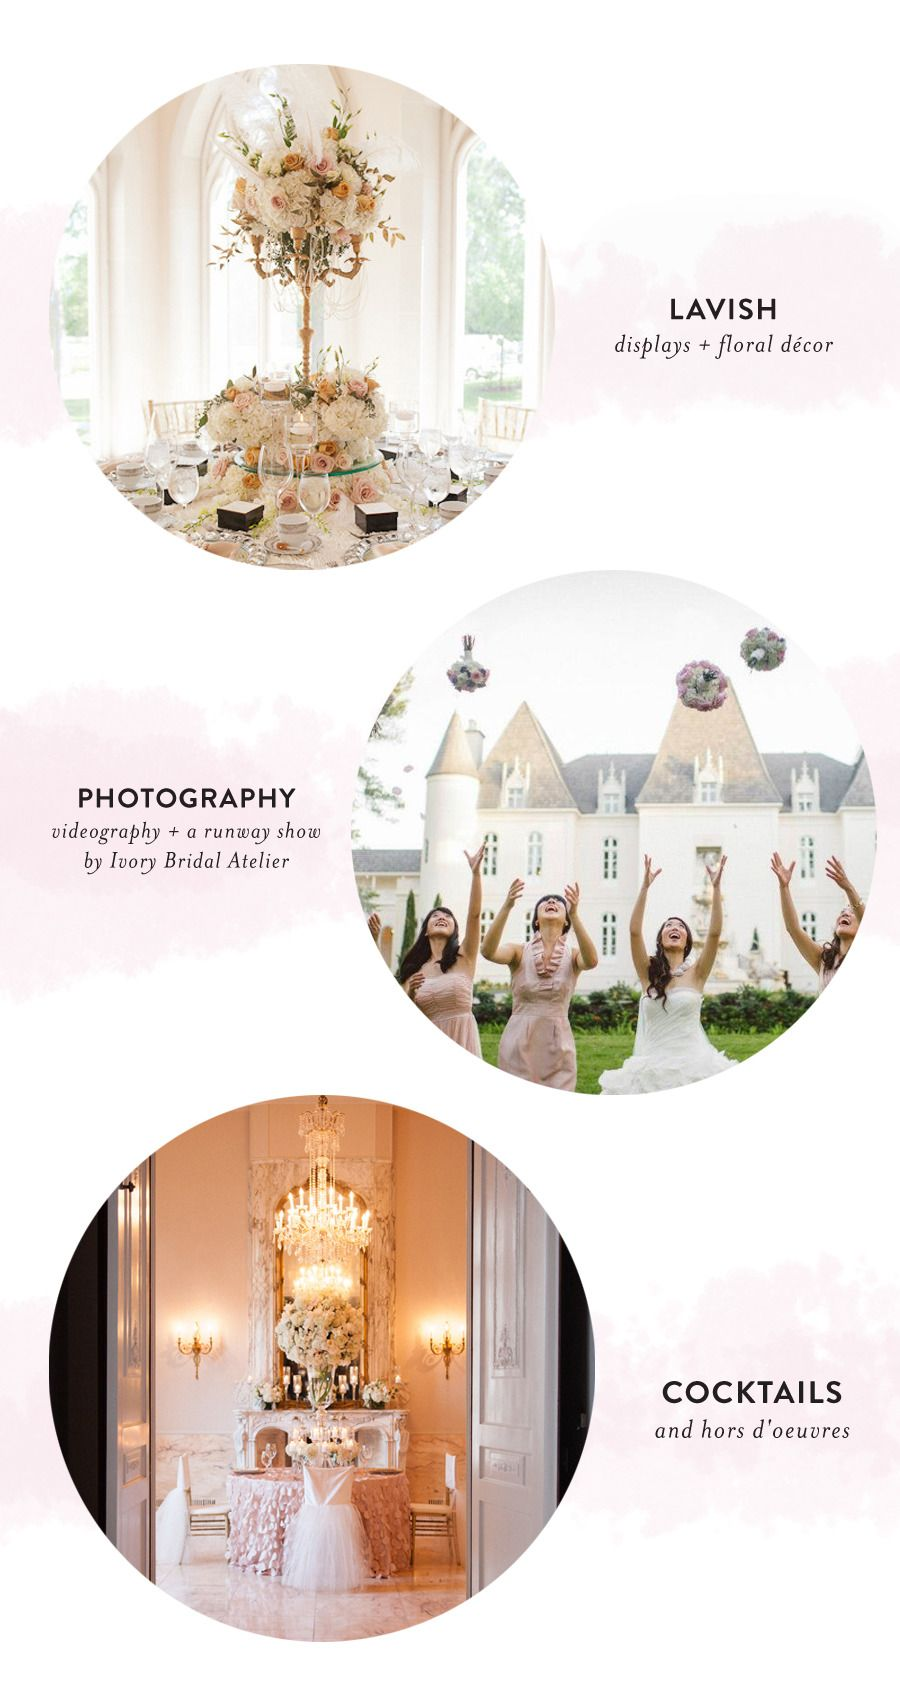 Being The Wedding Lover That I Am Simply Couldnt Imagine A Better Way To Spend Sunday In February Than At Royal Occasion Bridal Open House